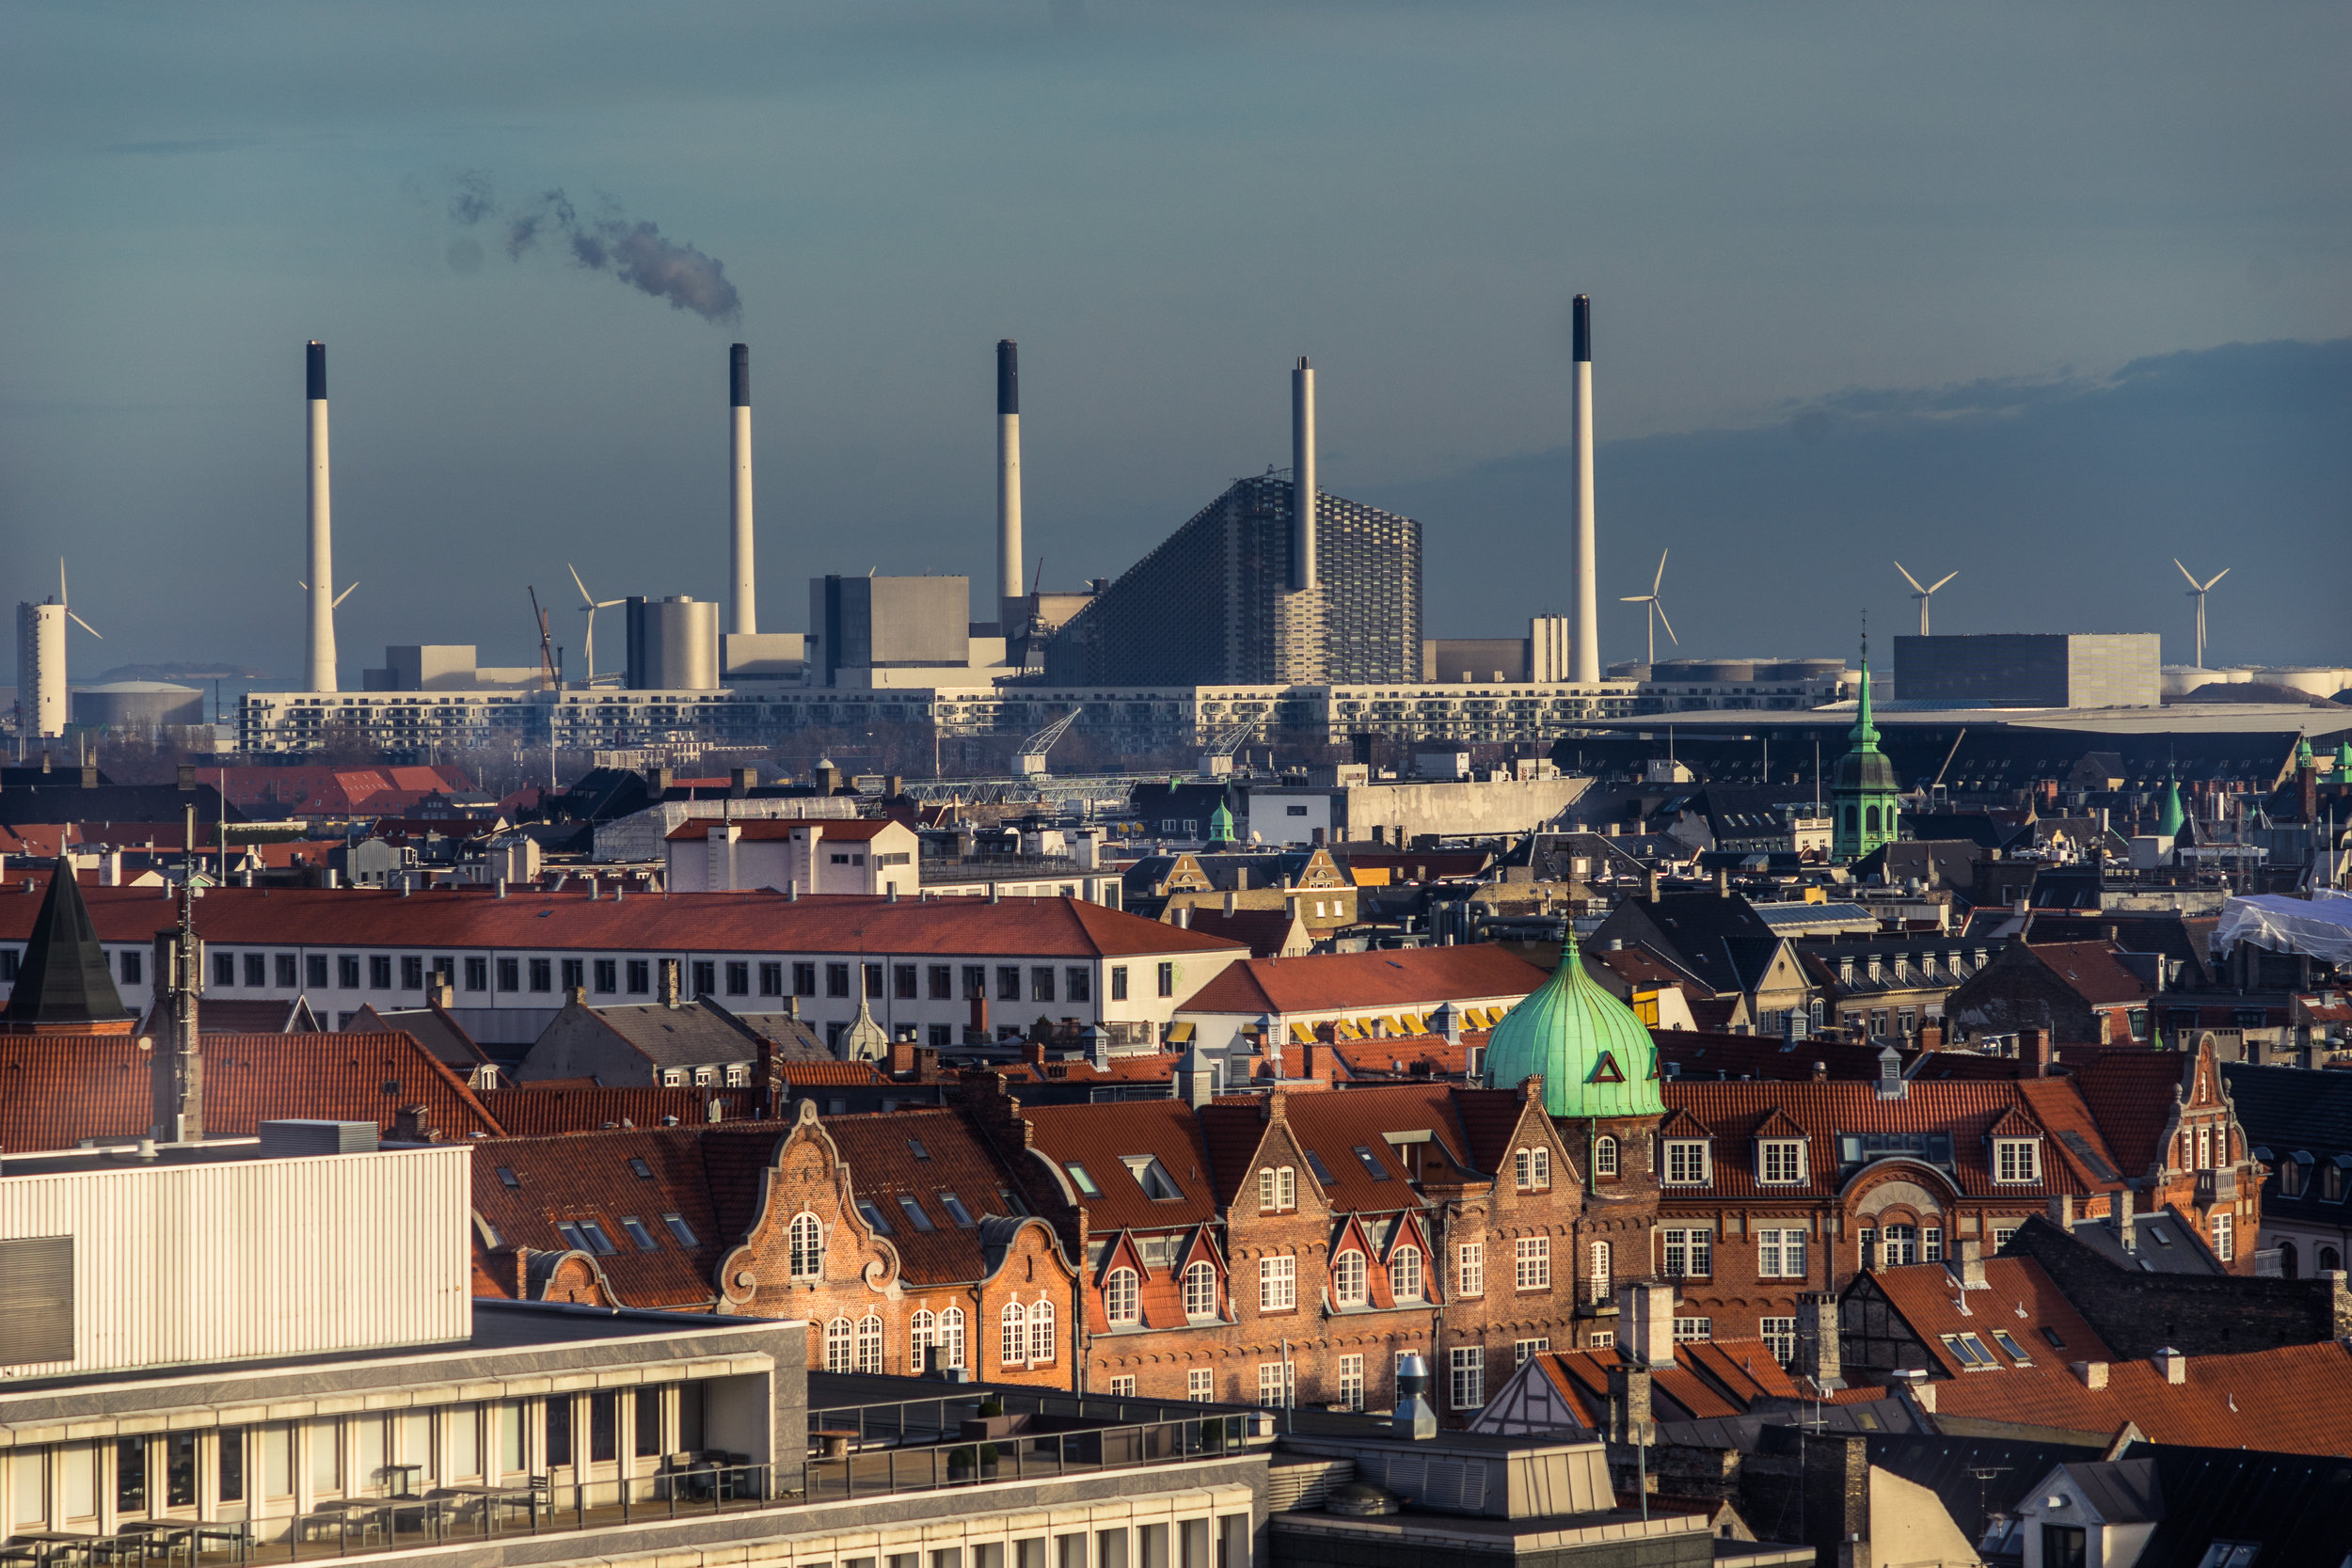 copenhagen. denmark. travel. adventure. europe. scandinavia. history. travelblog. city view.jpg